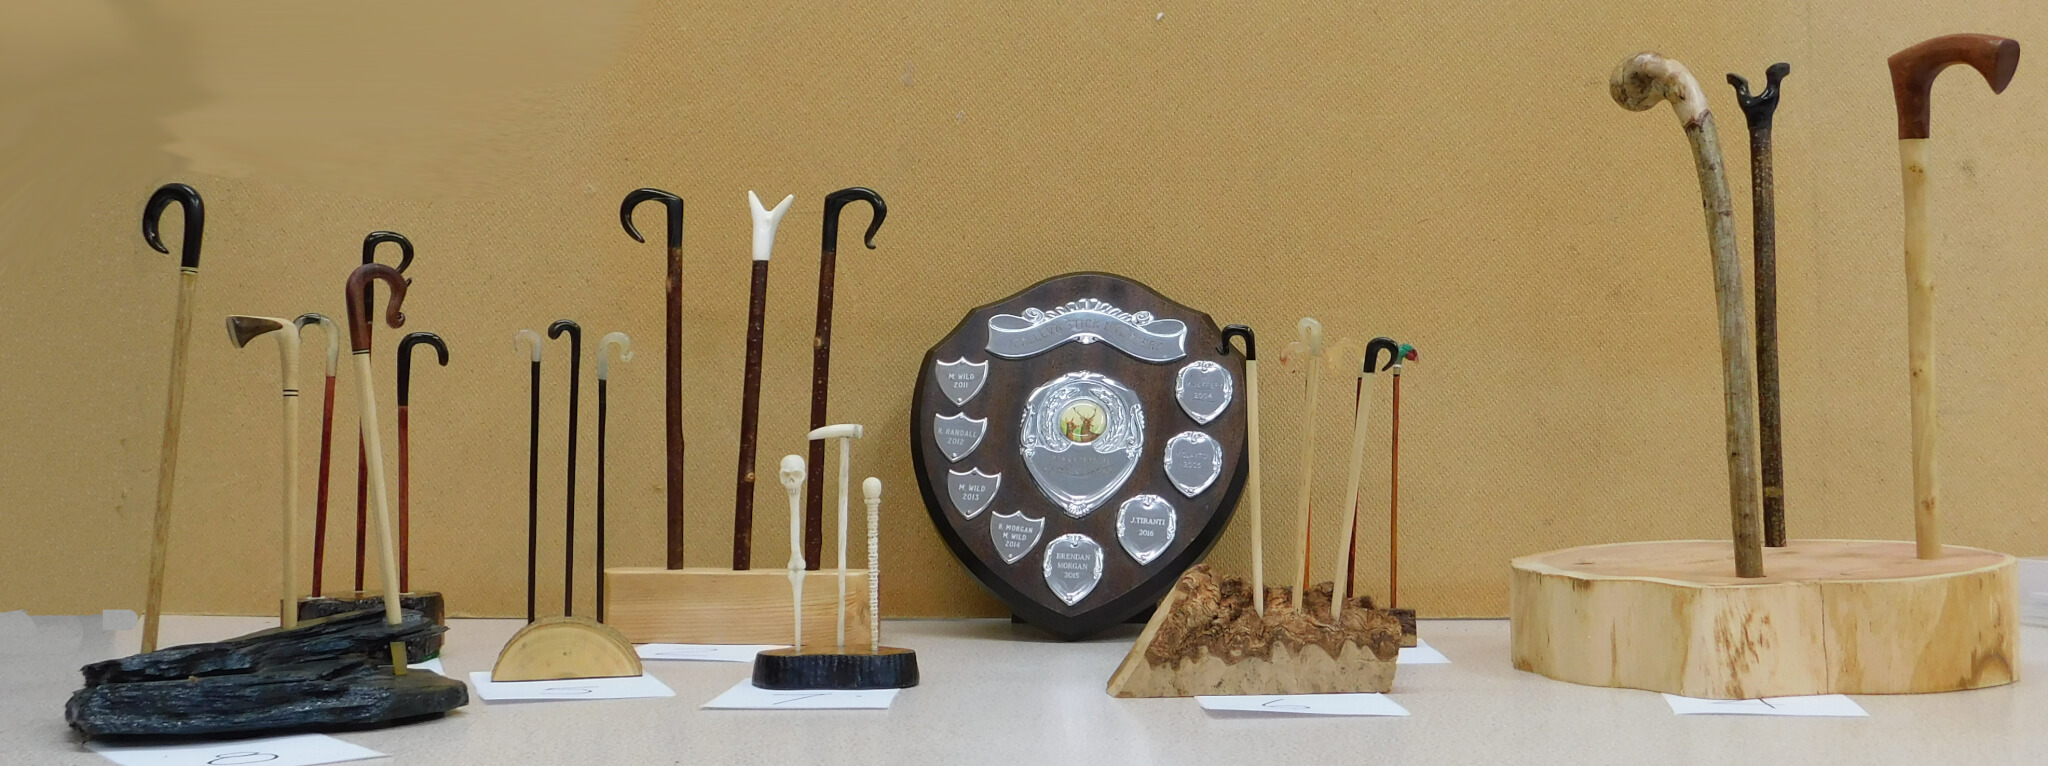 AGM Miniature Stick Competition